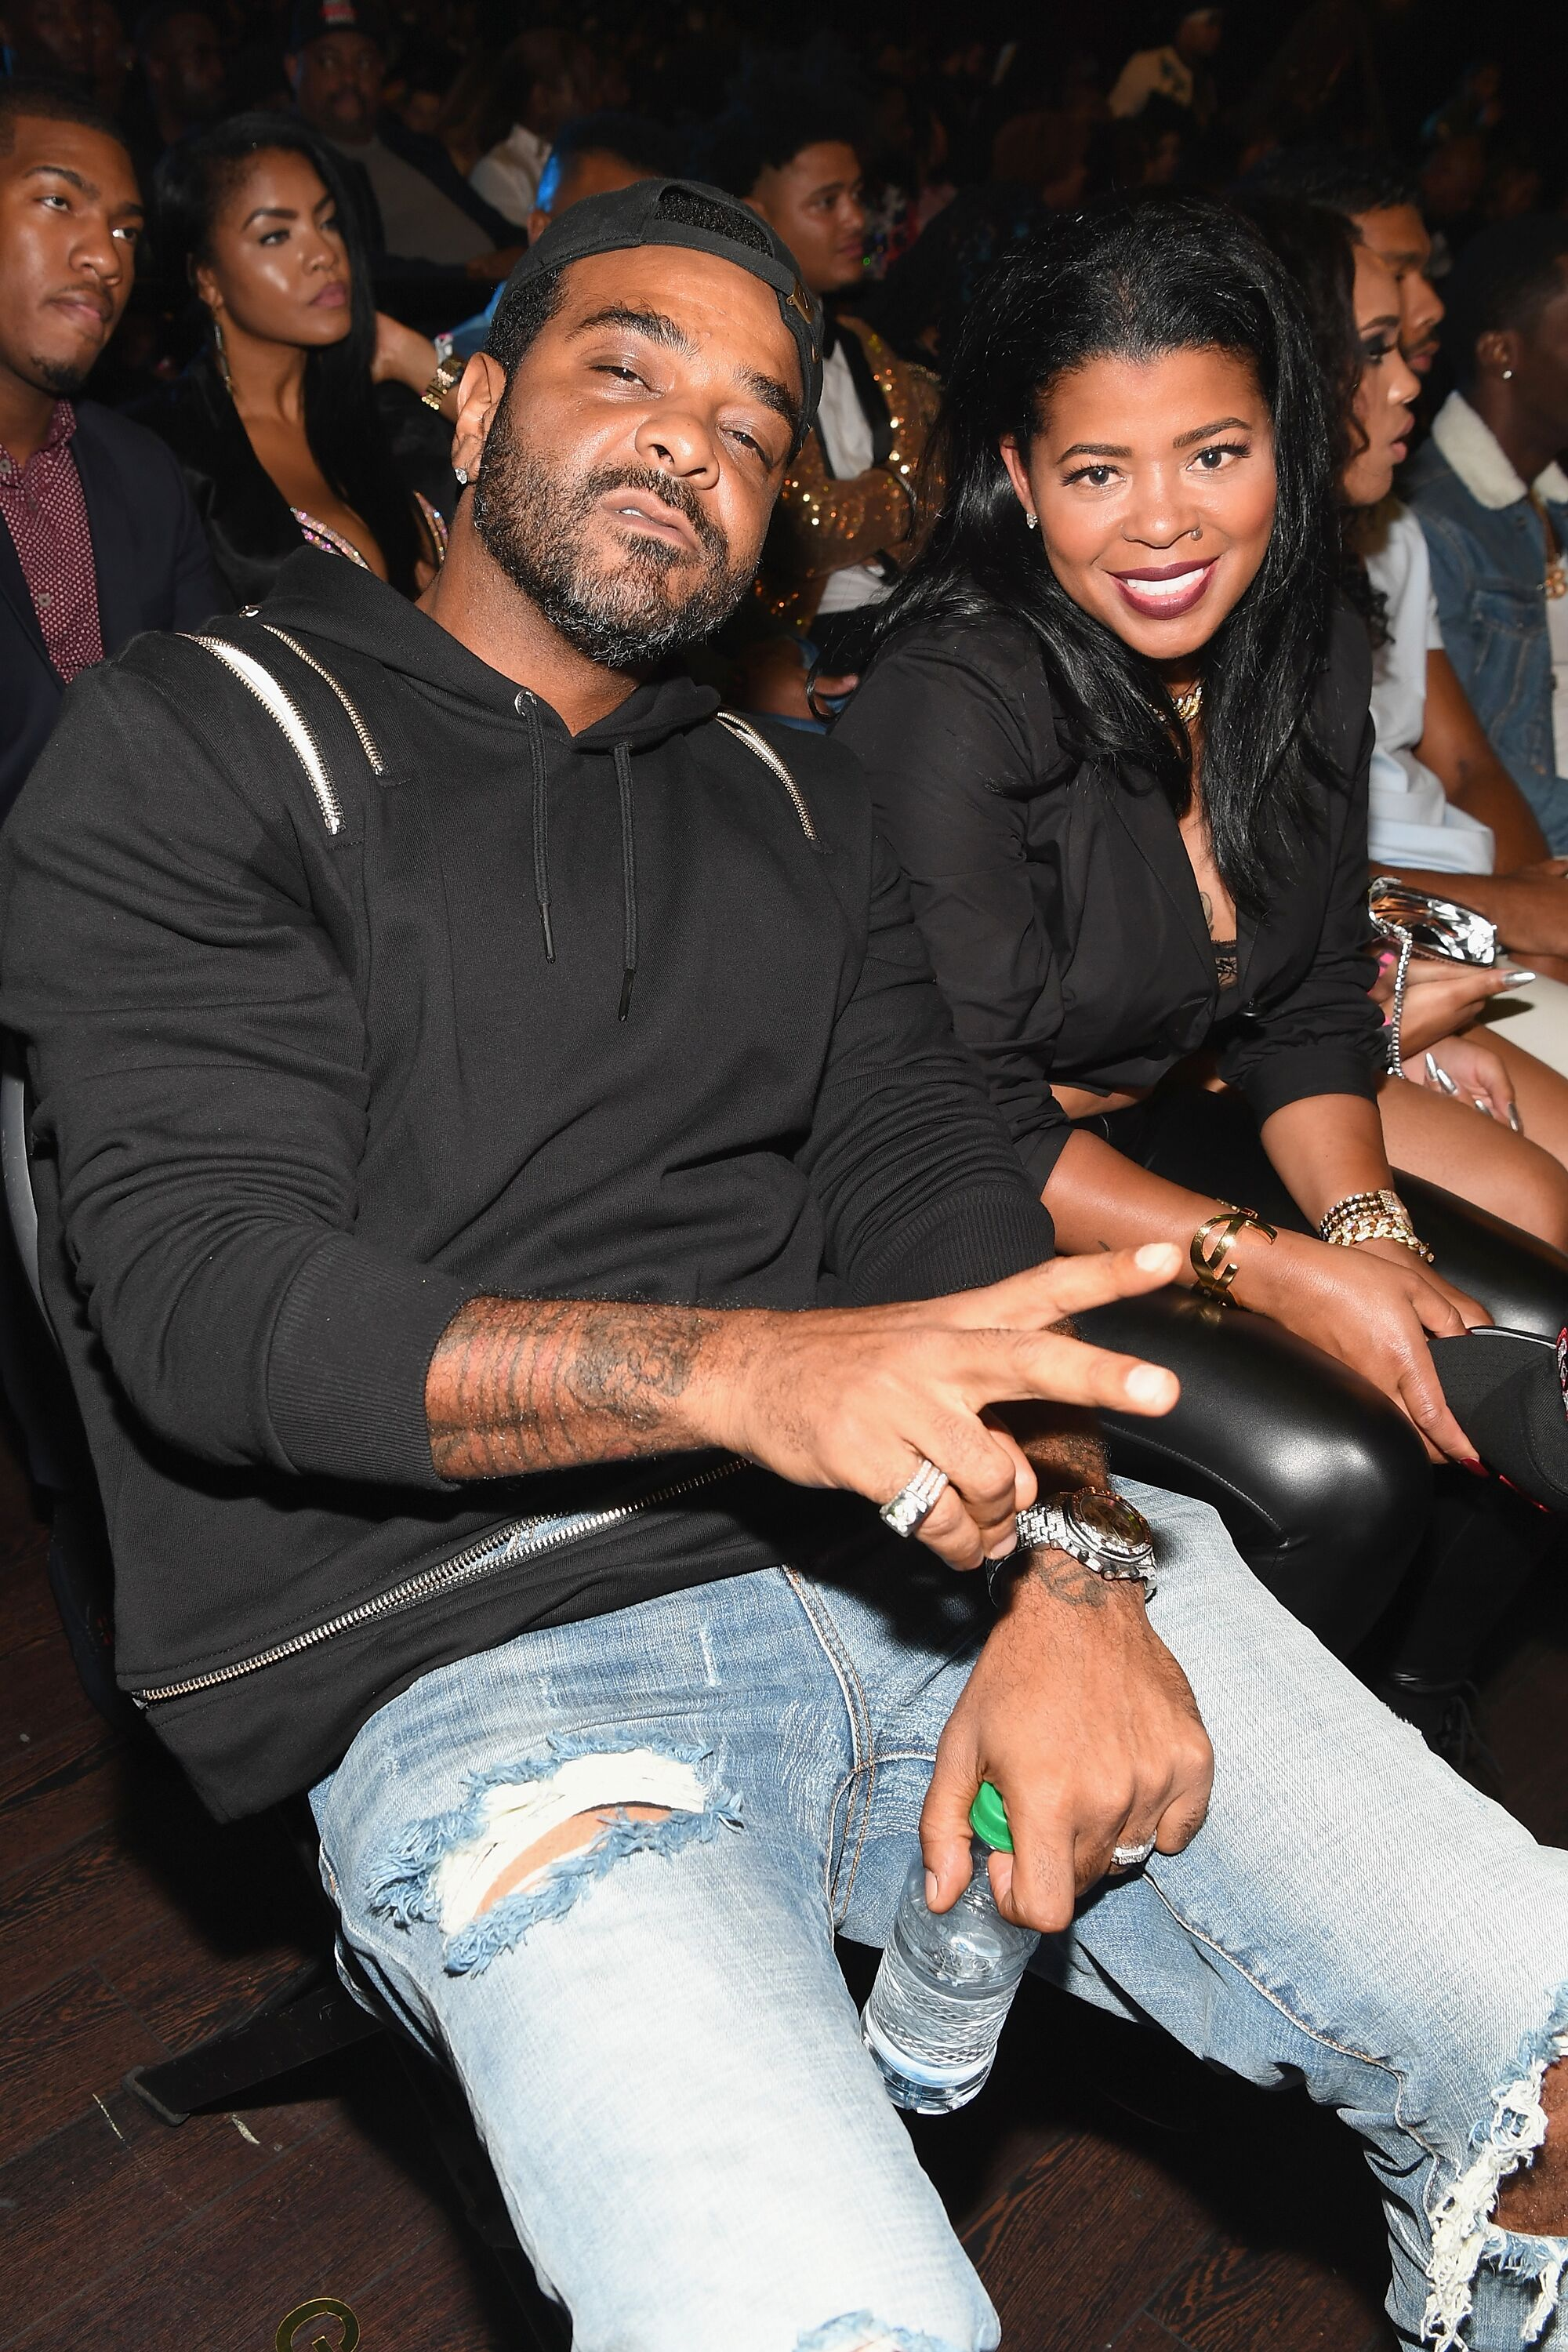 Rapper Jim Jones and fiancé Chrissy Lampkin at the 2017 BET Hip Hop Awards. | Source: Getty Images/GlobalImagesUkraine